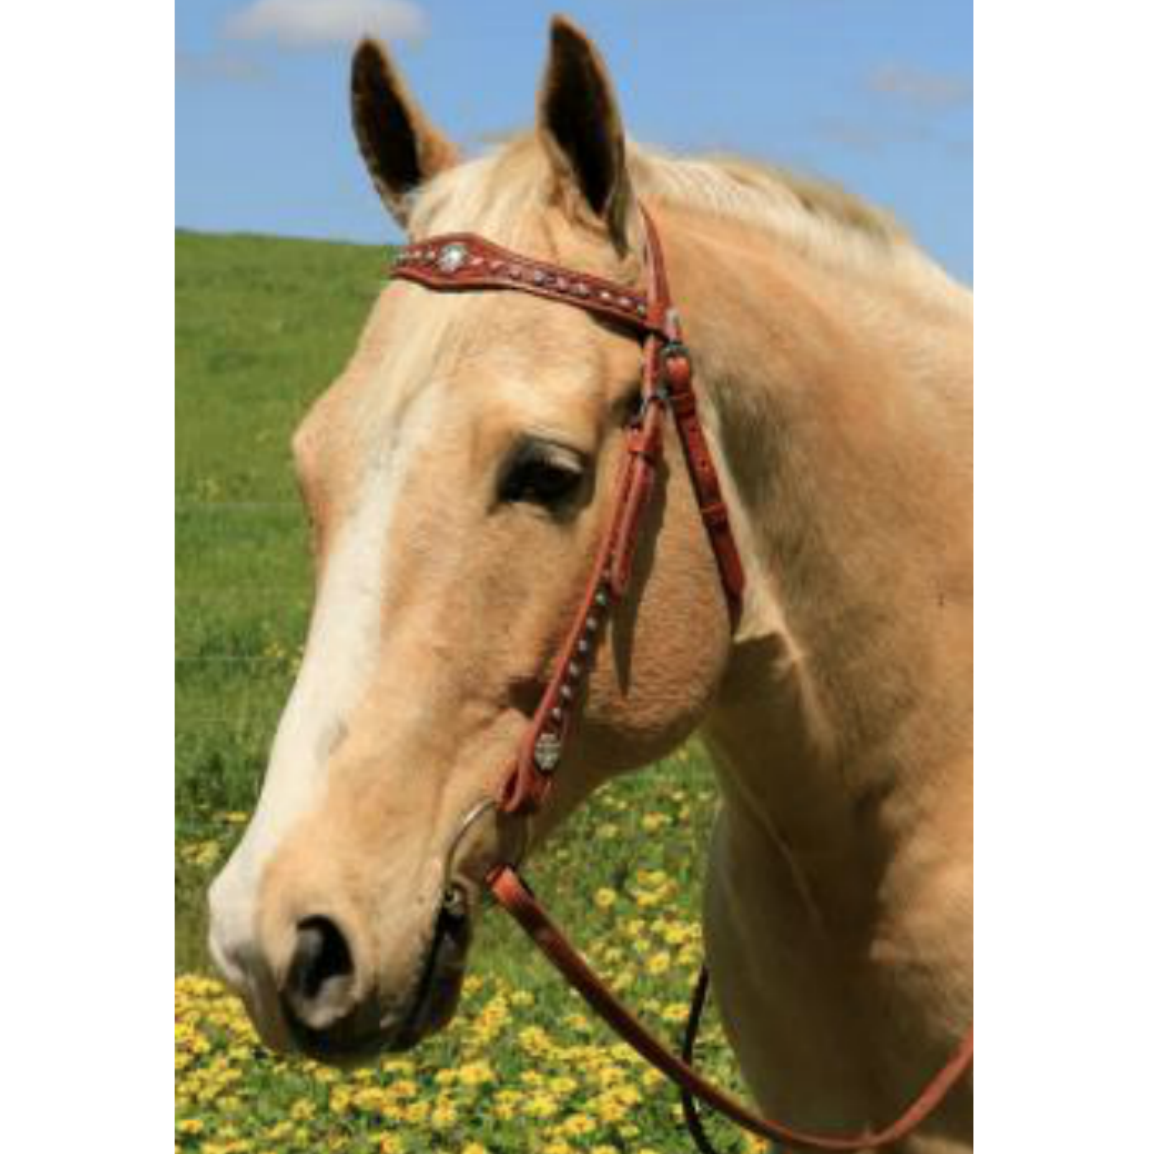 Photo of a horse wearing Cluster of Jewels Western Bridle